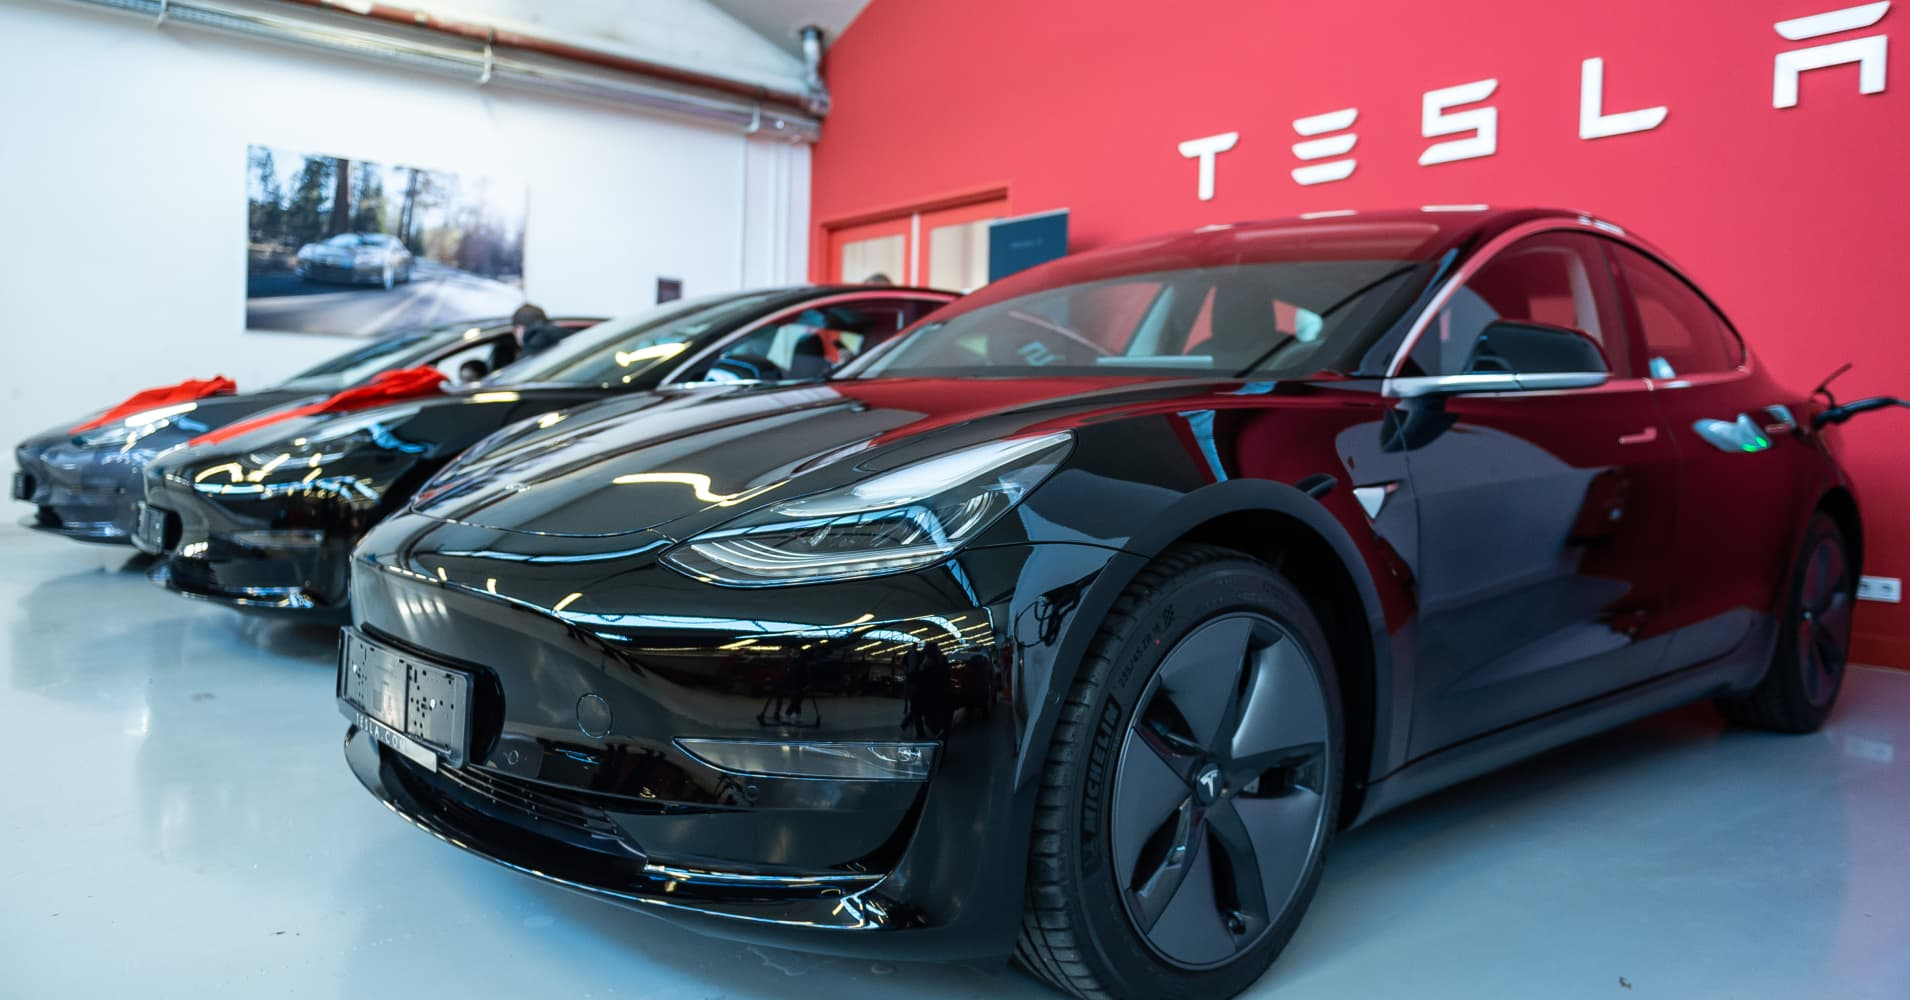 Want to go green and get a Tesla Model 3? Here's what you need to know first